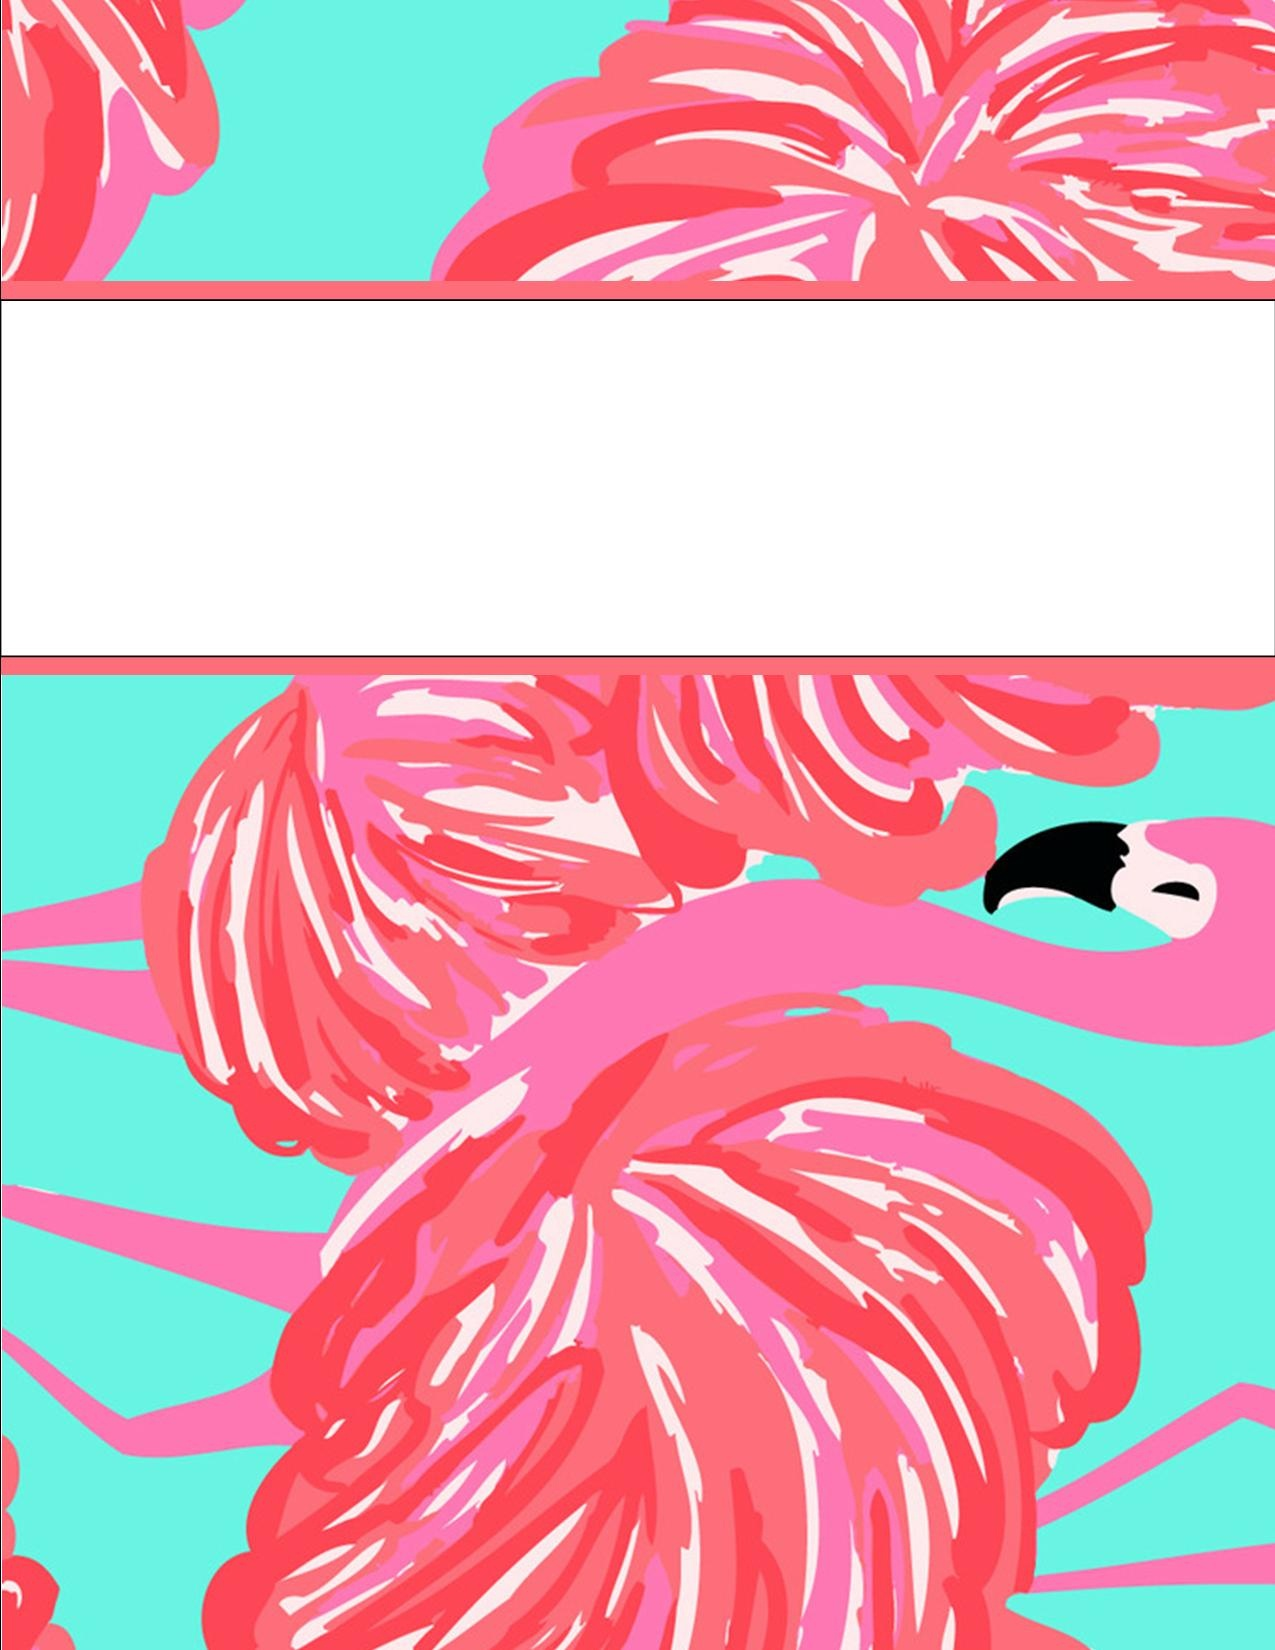 My Cute Binder Covers | Happily Hope - Free Printable Binder Cover Templates